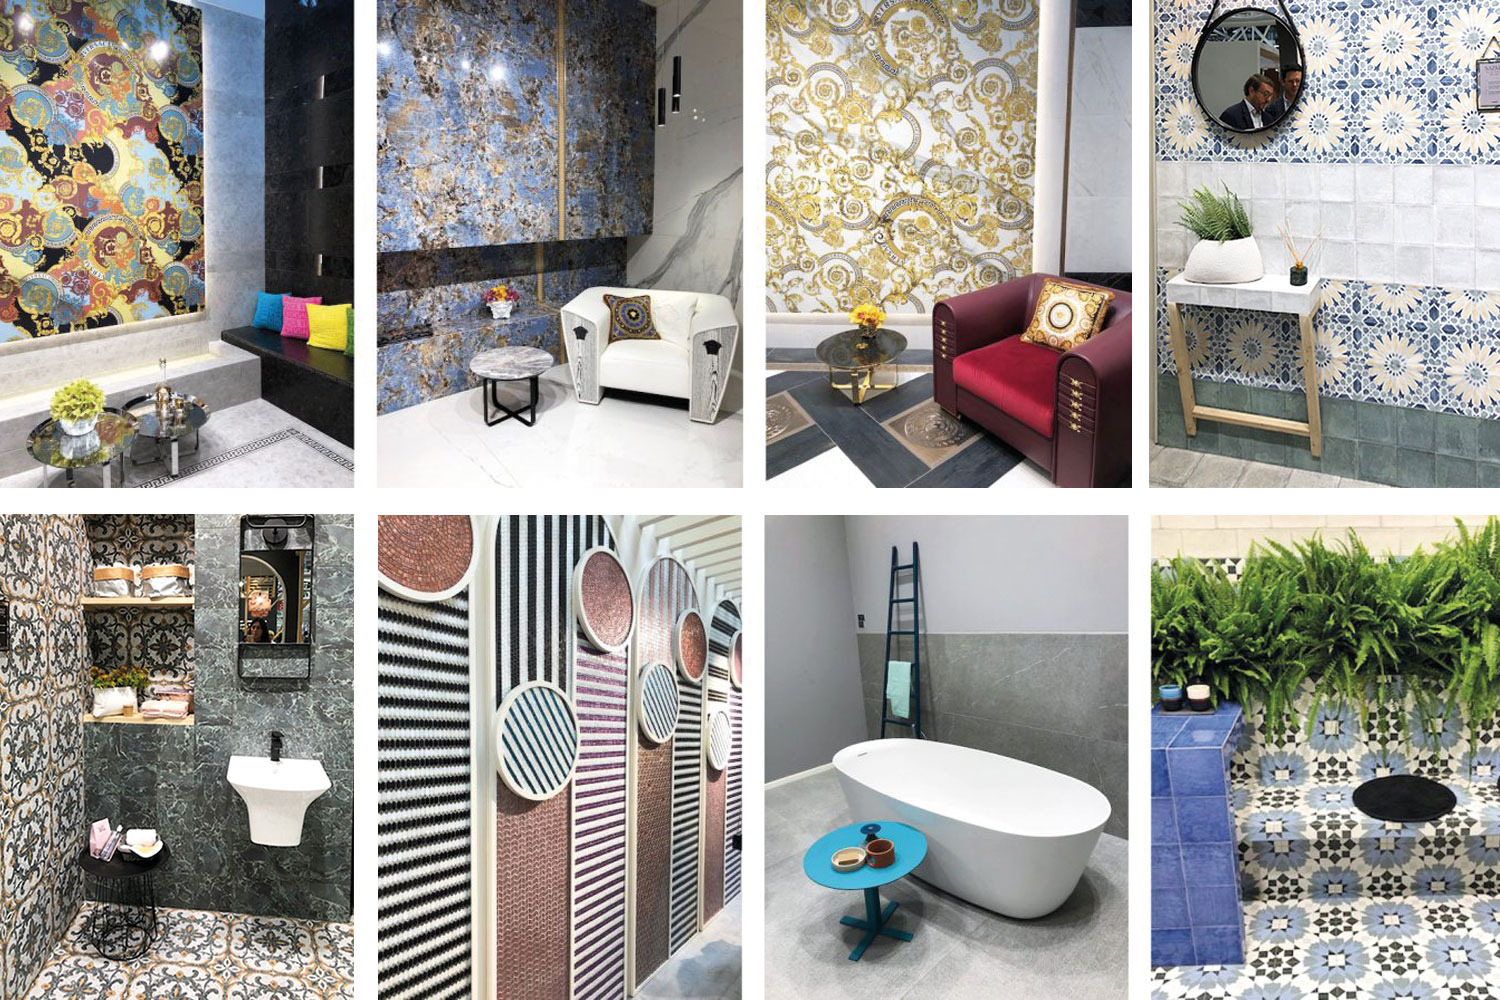 The latest bathroom trends from Cersaie